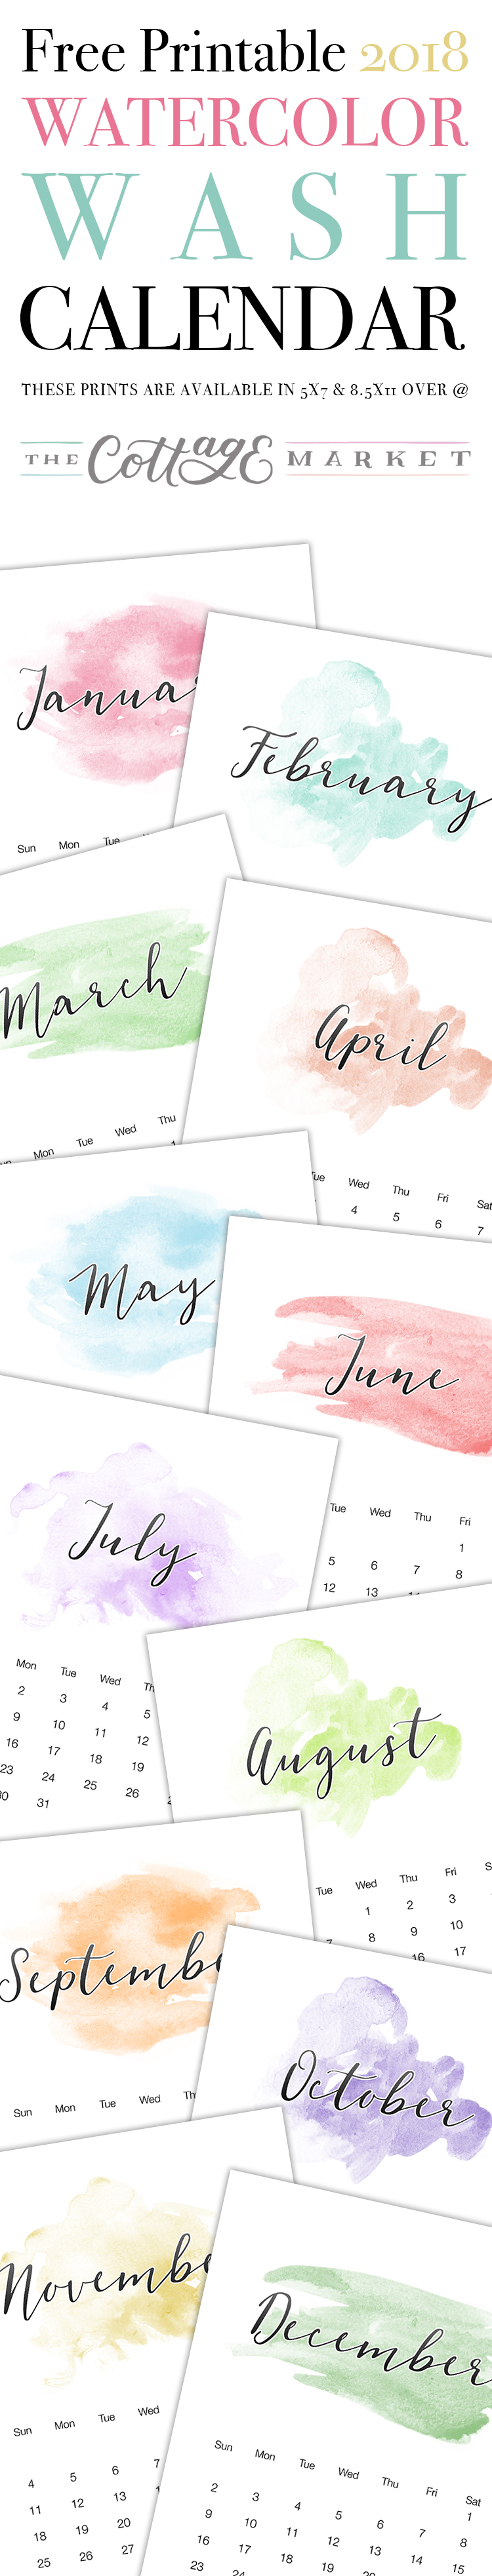 Watercolor Wash Printable Calendar